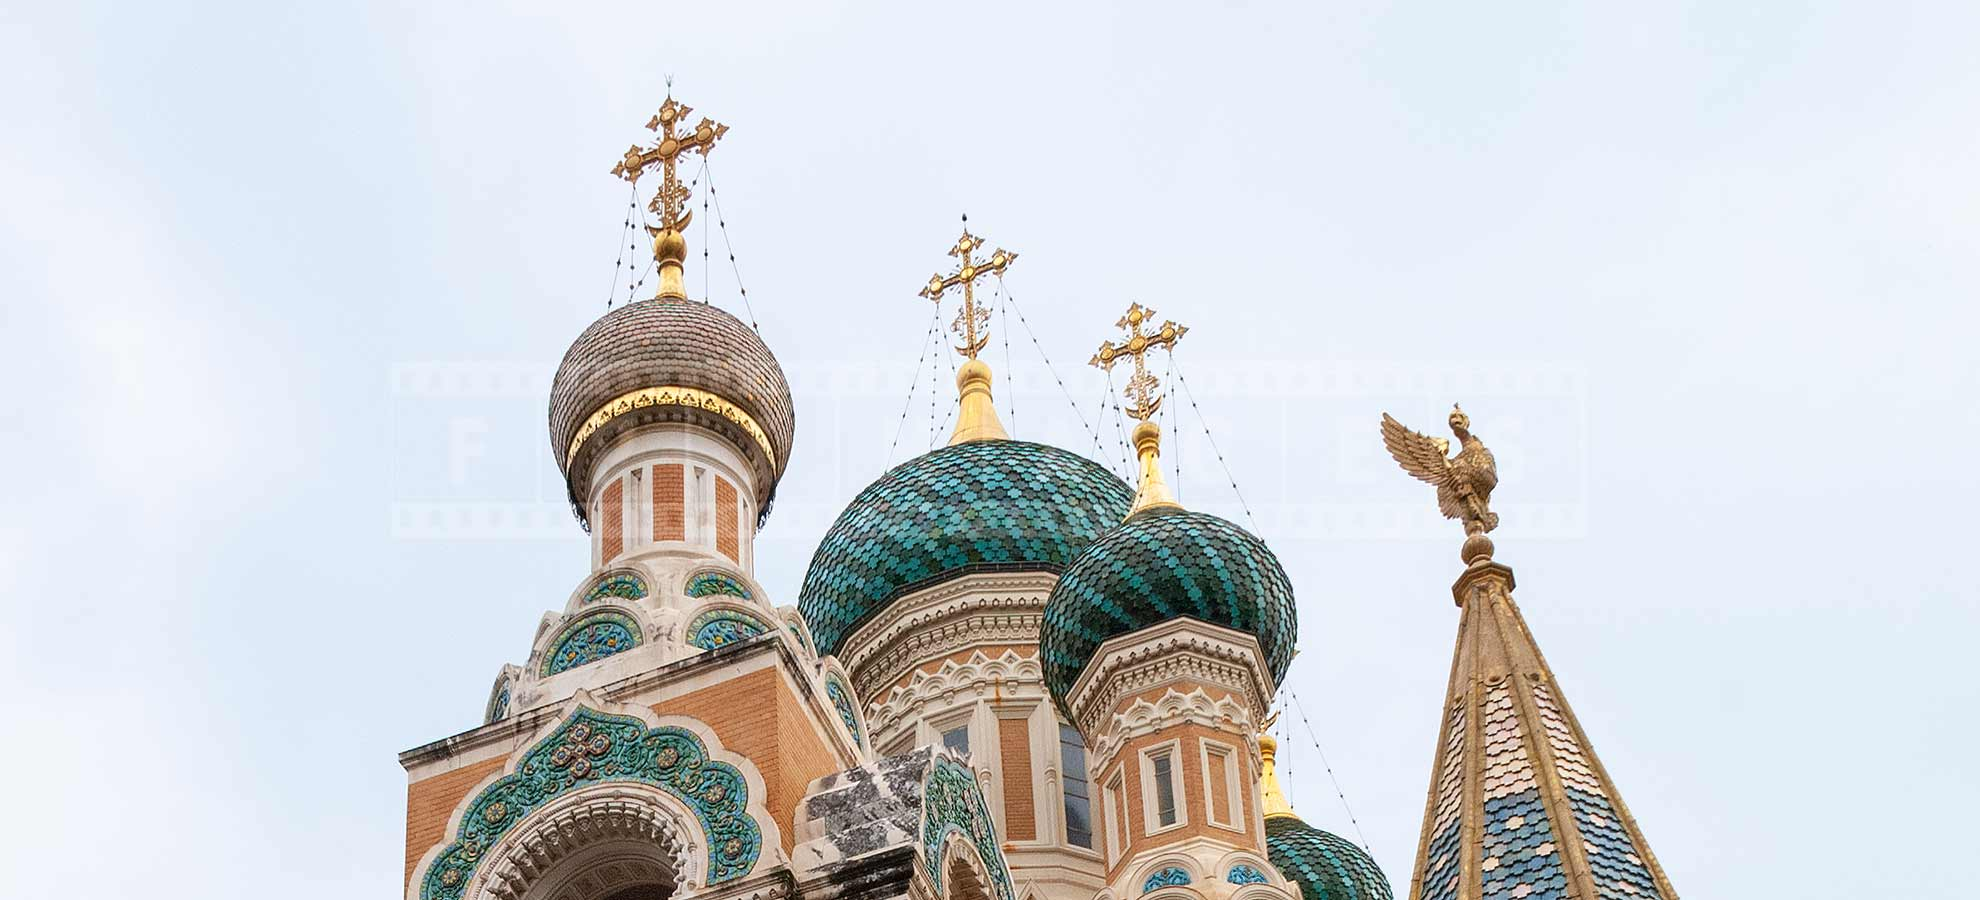 Crosses and domes of St Nicholas orthodox cathedral